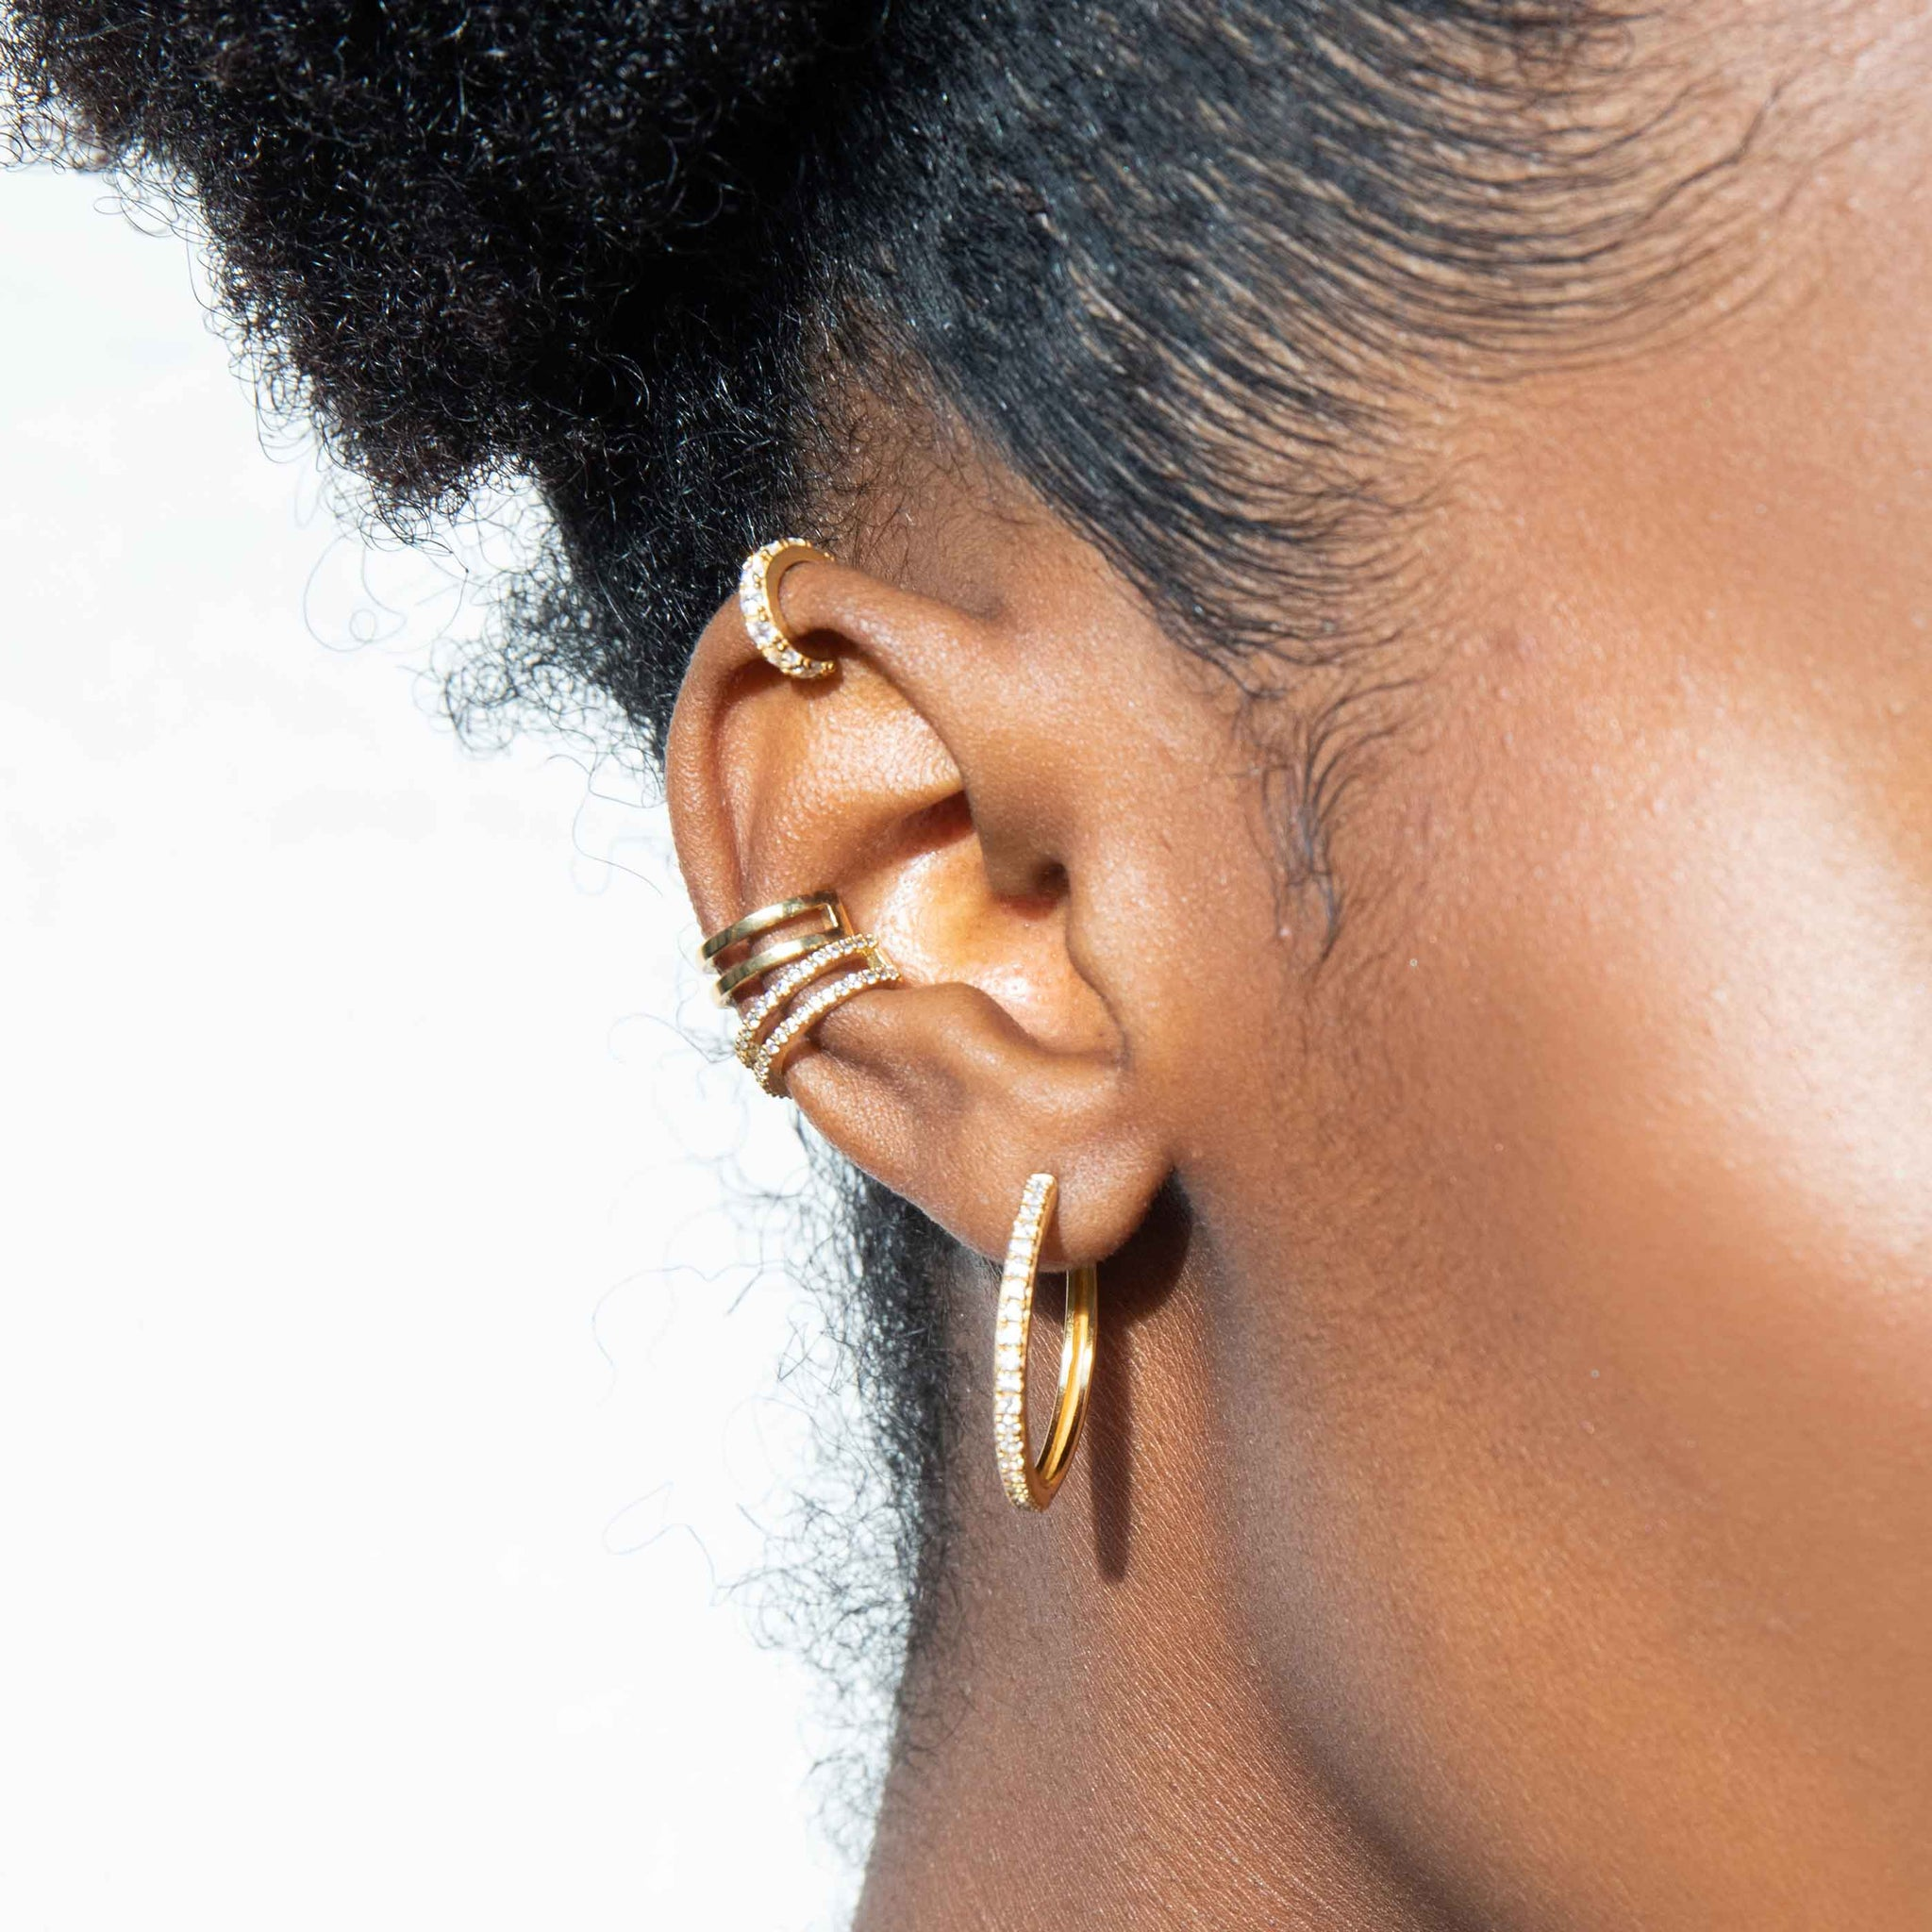 Mini Wishbone Ear Cuff in Gold worn with hoop earrings